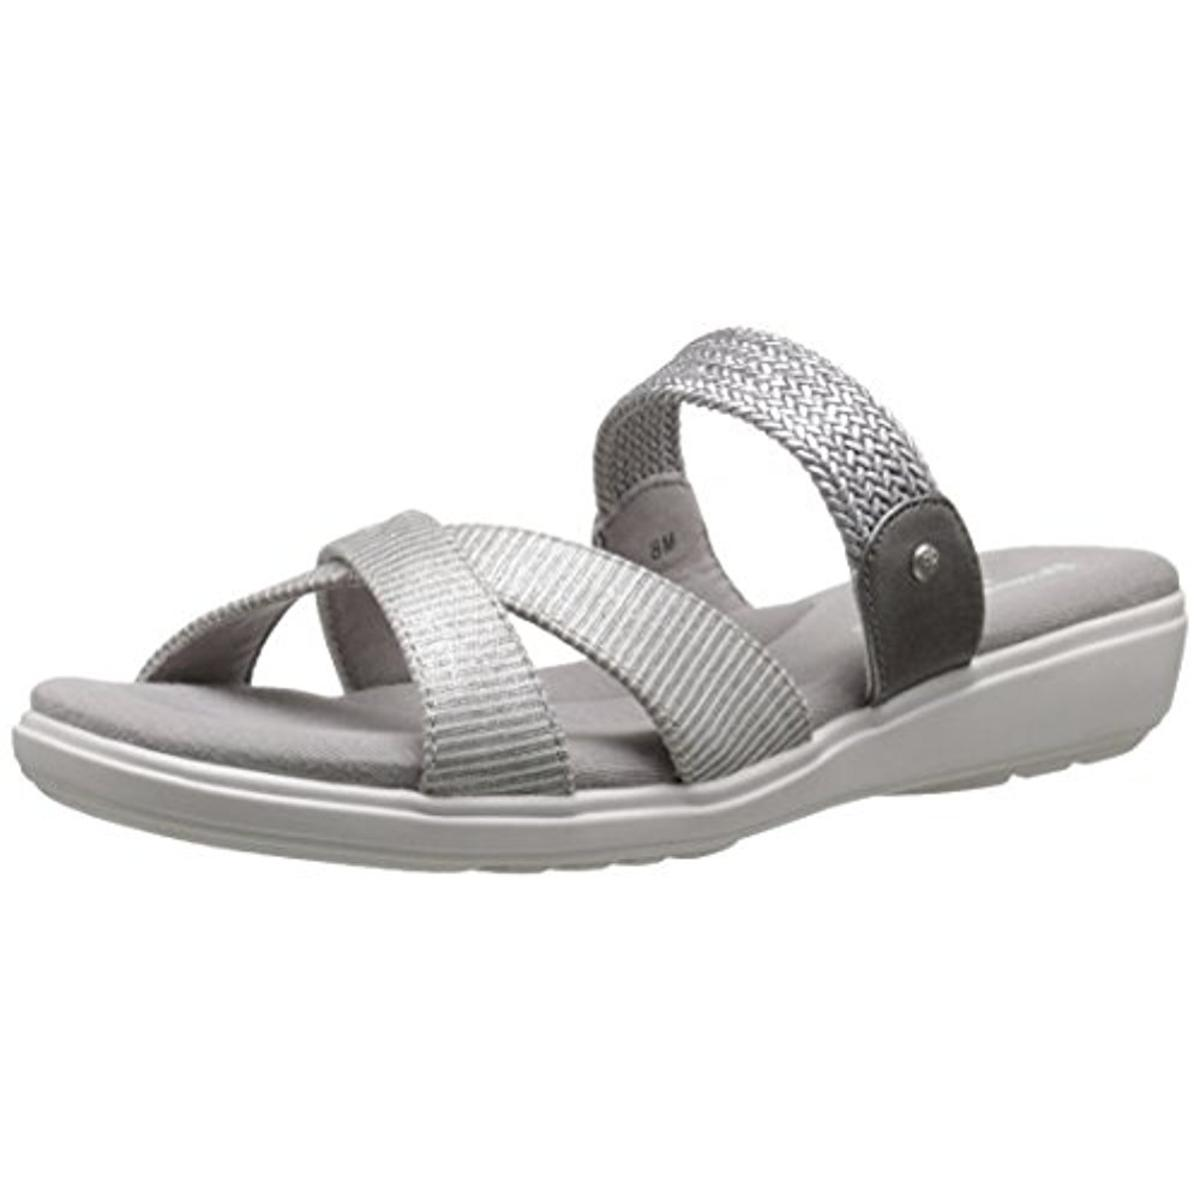 Grasshoppers Womens Finley Canvas Ortholite Slide Sandals by Grasshoppers